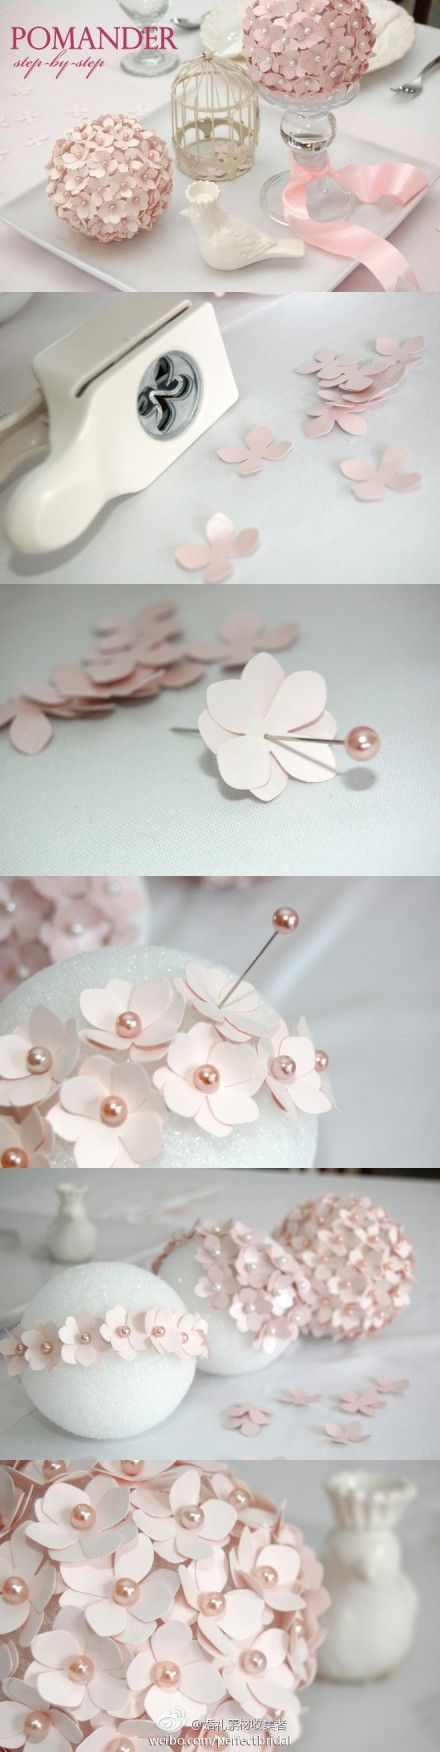 DIY different style of Pomander: Idea, Flower Ball, Diy'S, Paper Flowers, Paper Punch, Tables Decoration, Centerpieces, Centers Piece, Crafts